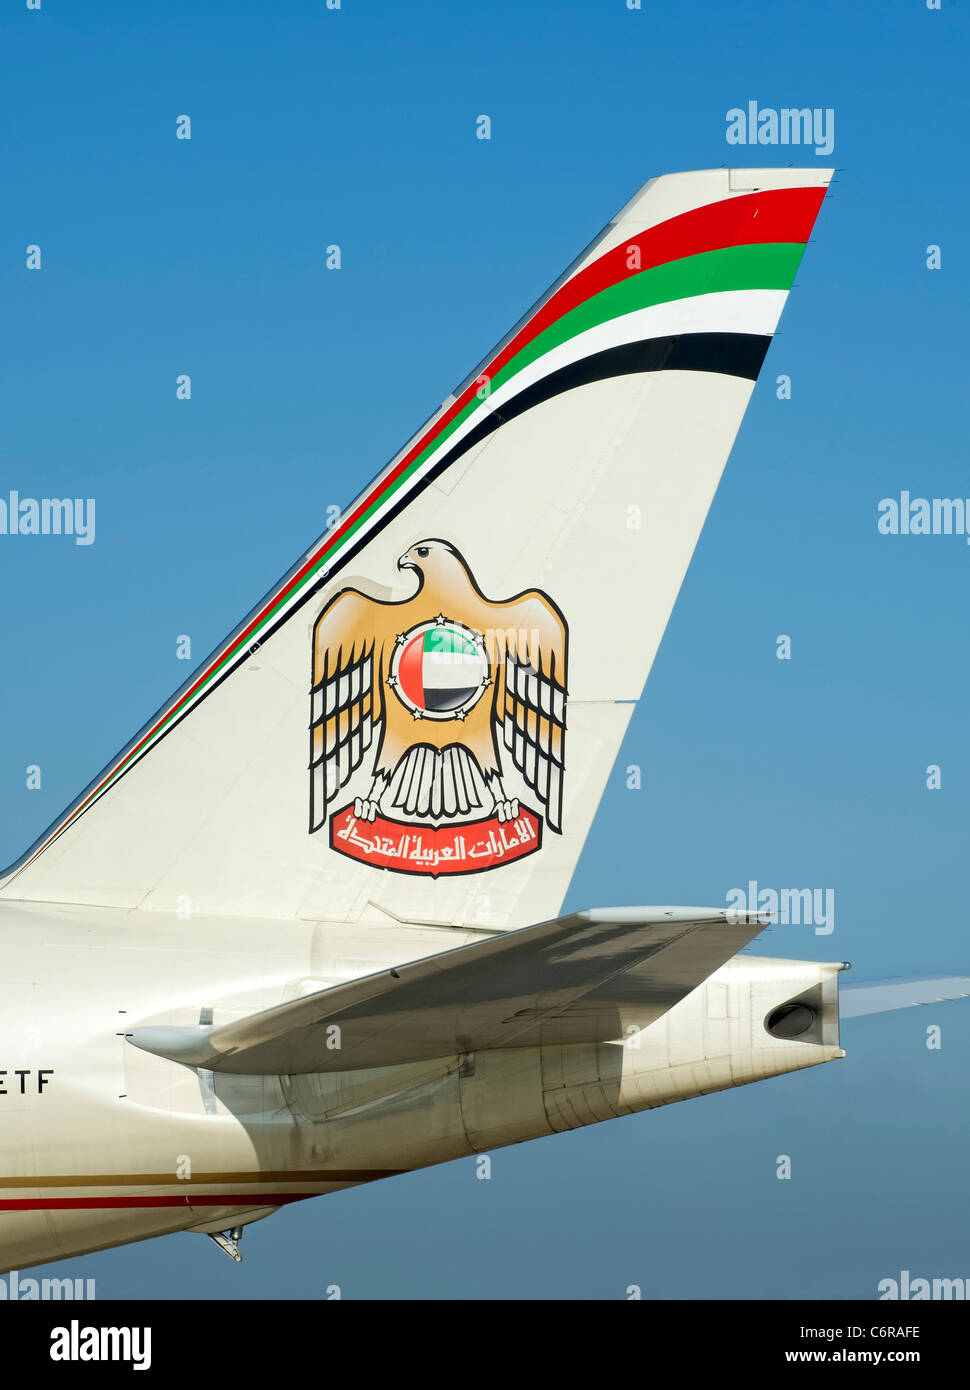 Tail fin of an Etihad aircraft showing the logo - Stock Image